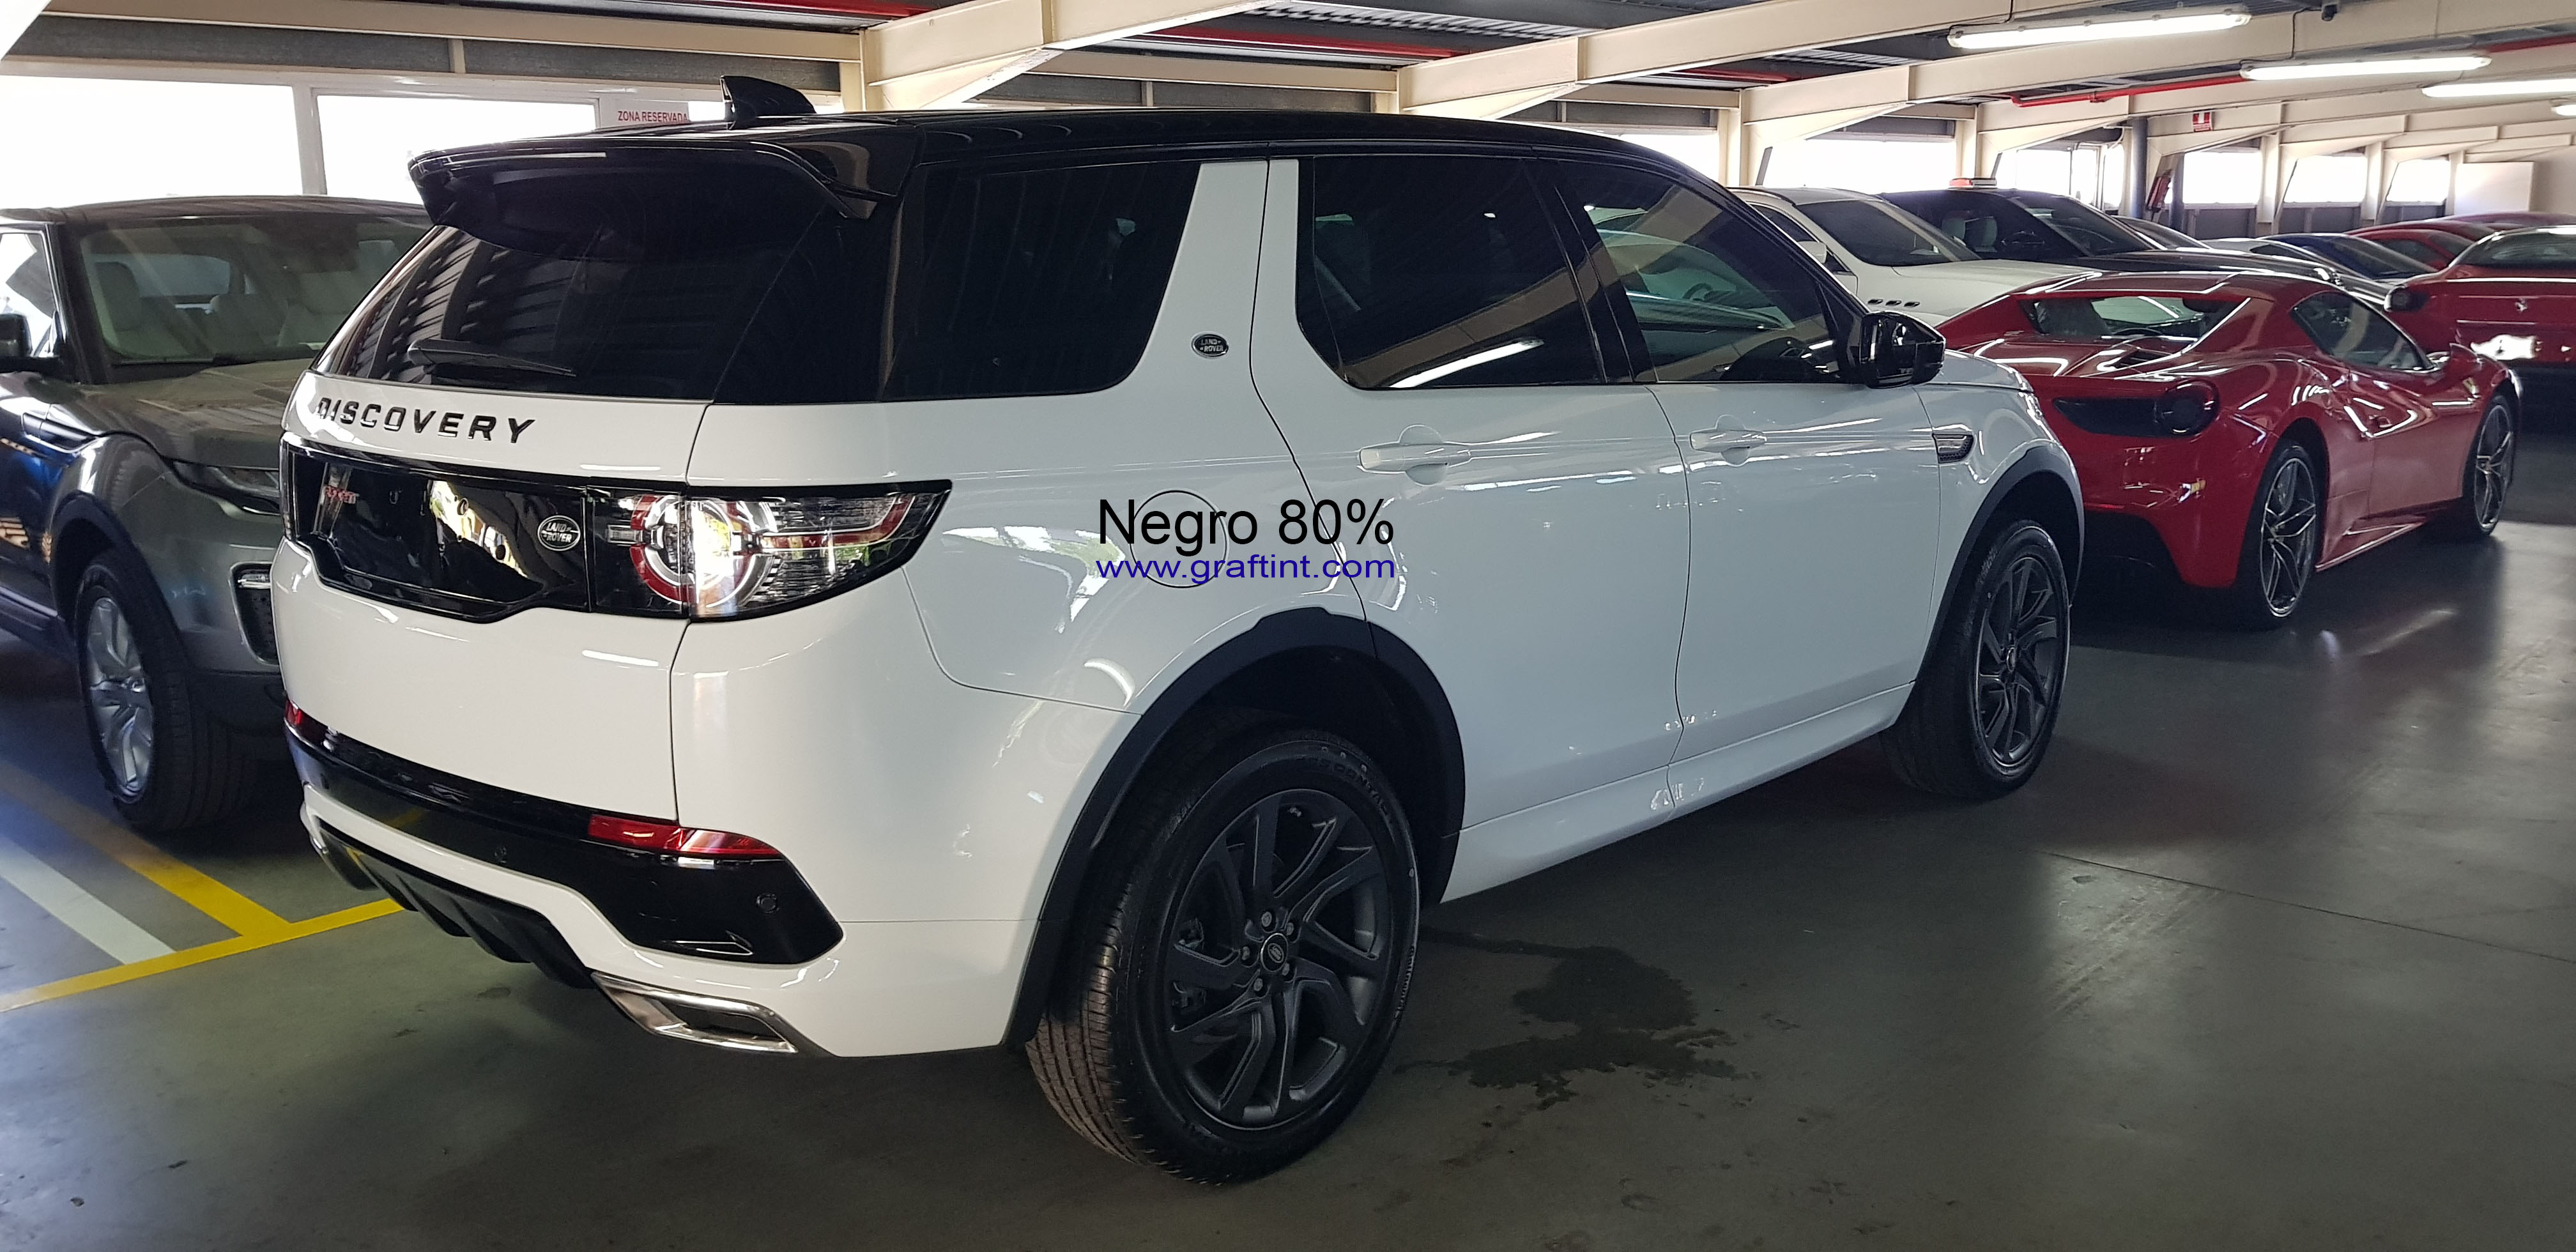 Discovery Sport - 80% (2)